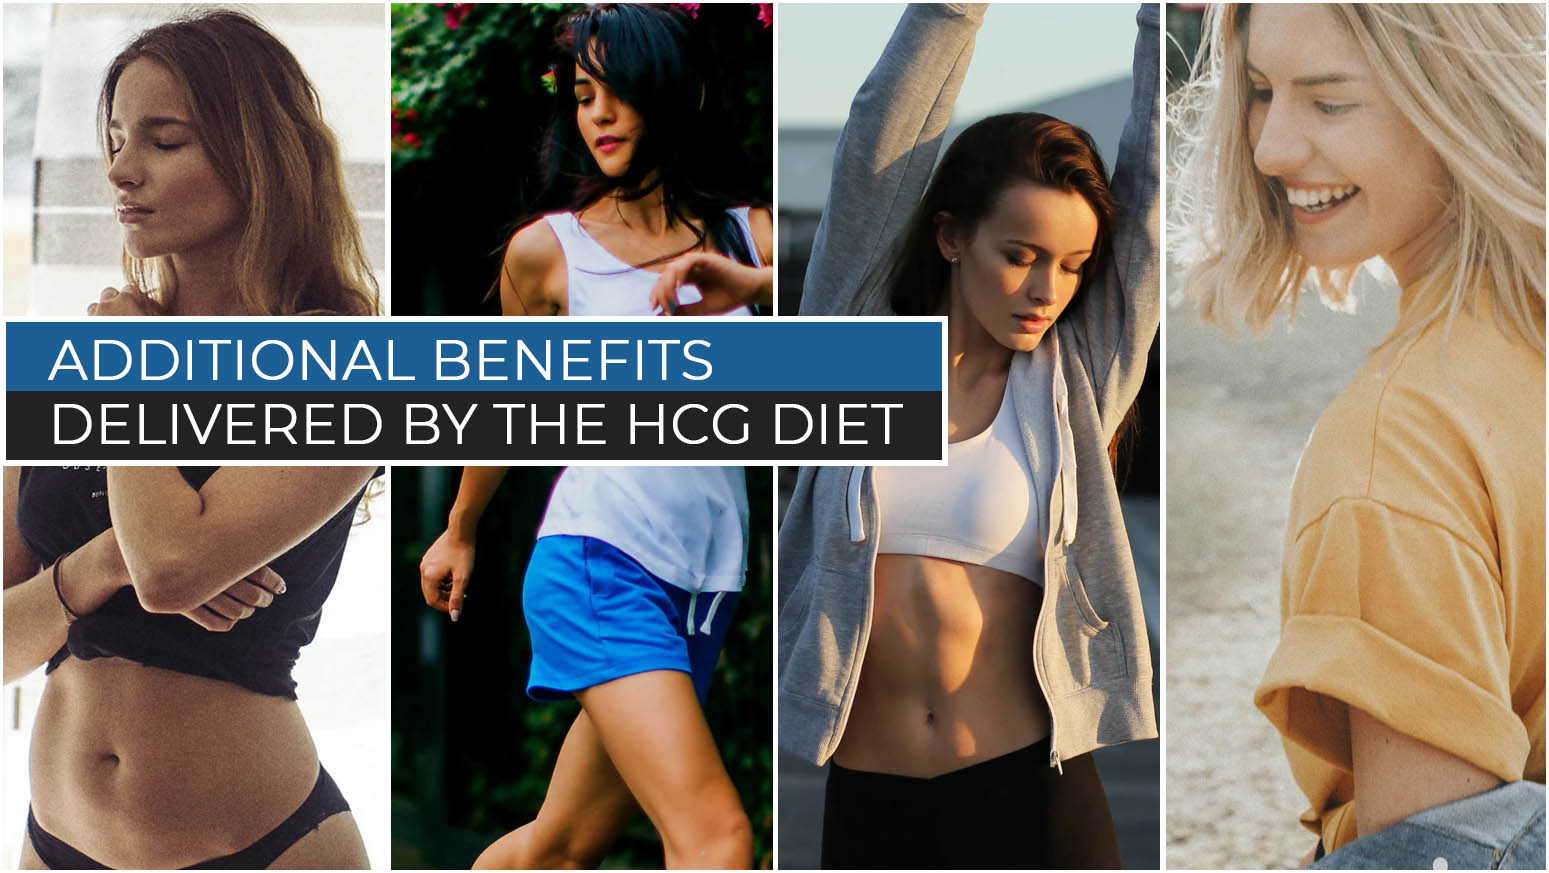 ADDITIONAL BENEFITS DELIVERED BY THE HCG DIET